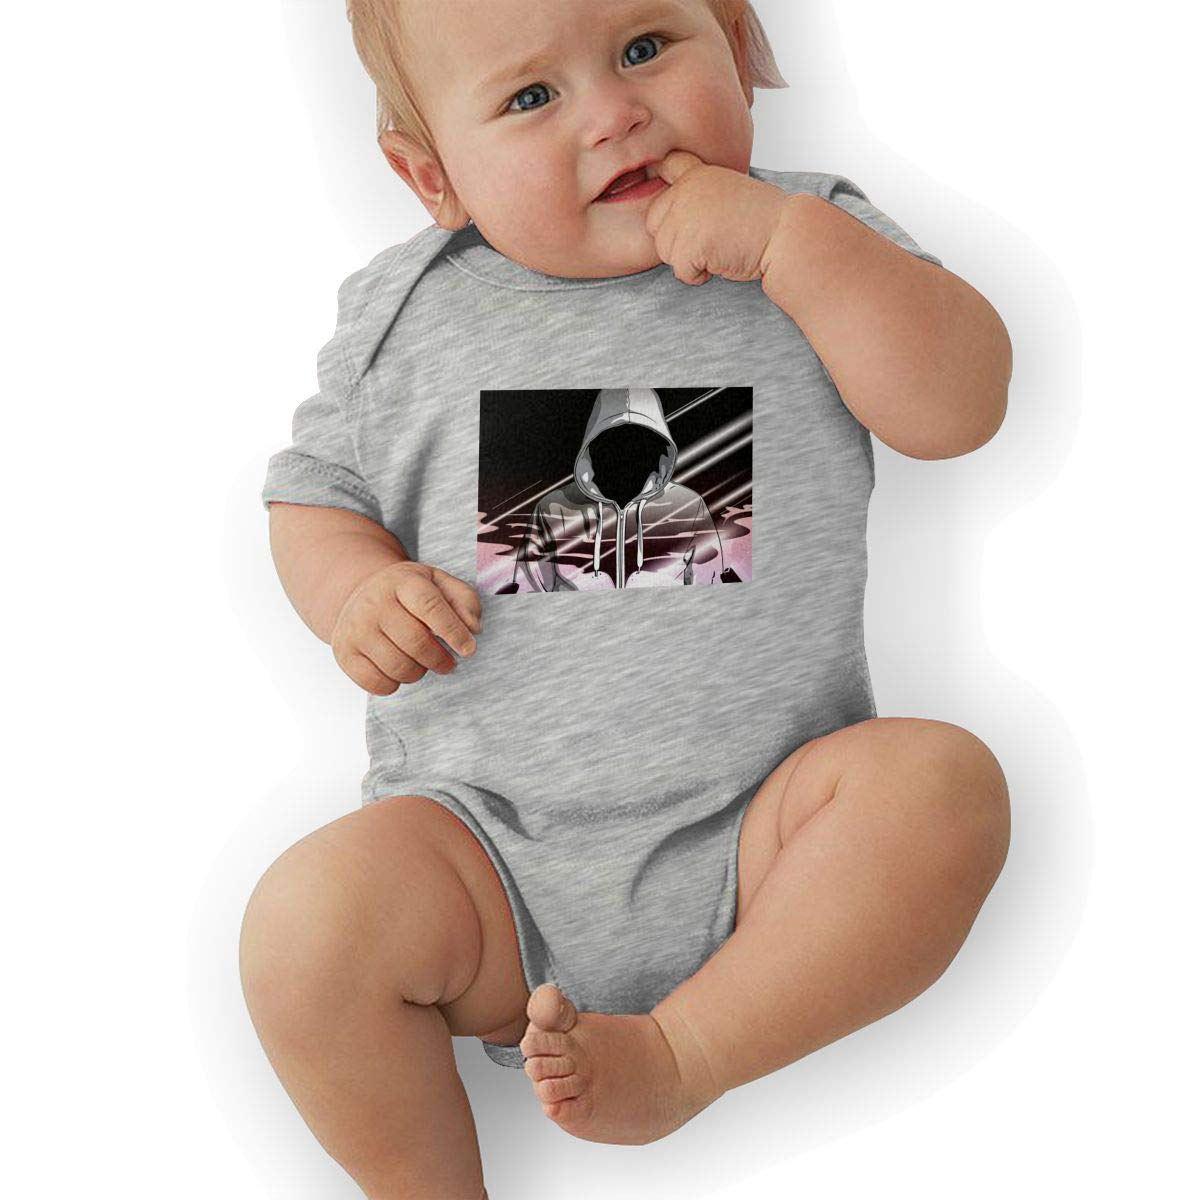 Newborn Baby Girls Bodysuit Short-Sleeve Onesie Hip-Hop Print Outfit Autumn Pajamas